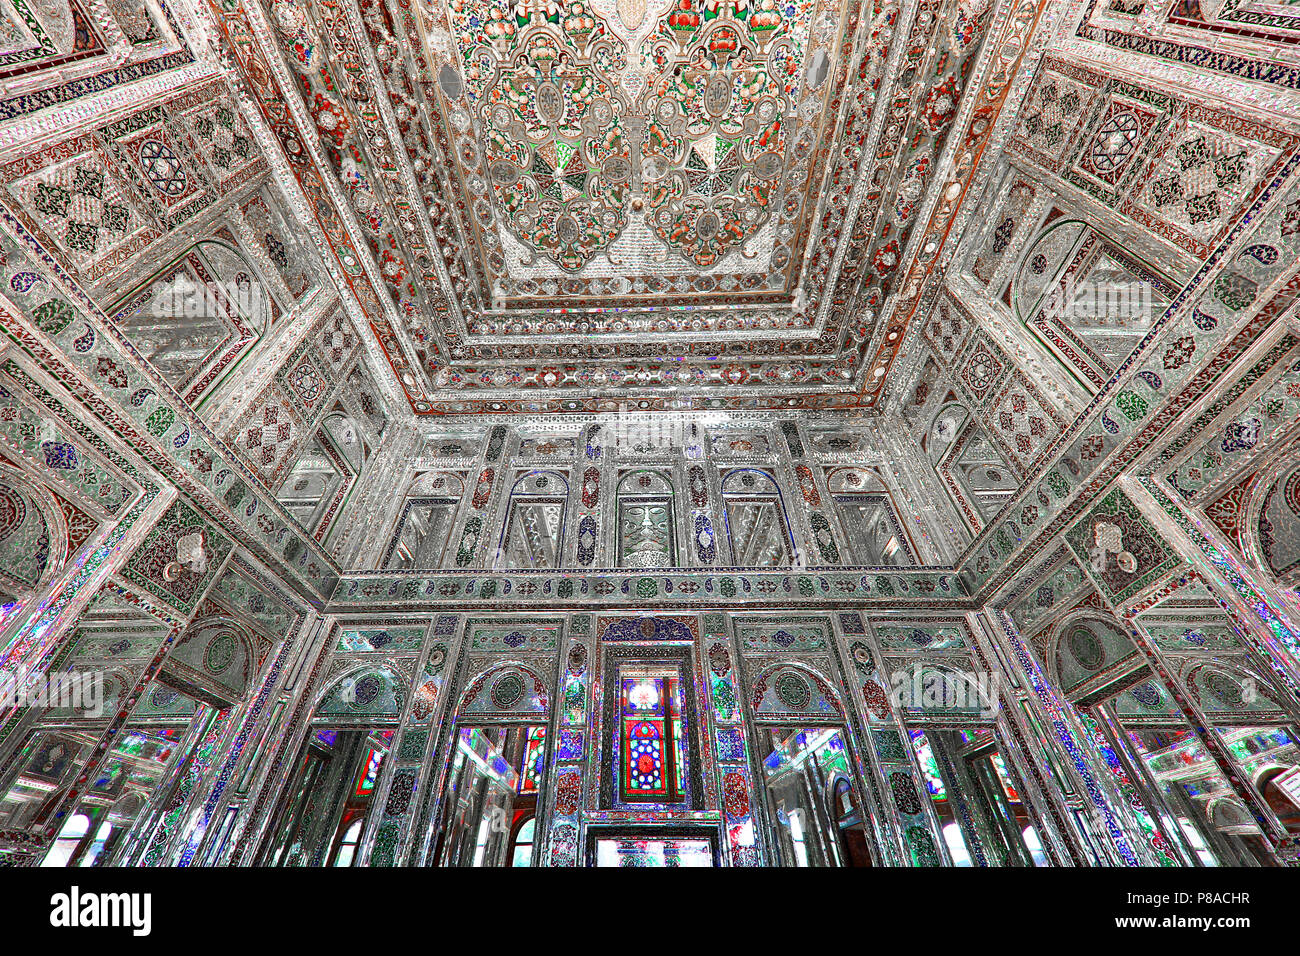 Ornaments with mirrors in the room known as Mirror Hall of historic Qavam House, in Naranjestan complex, in Shiraz, Iran - Stock Image